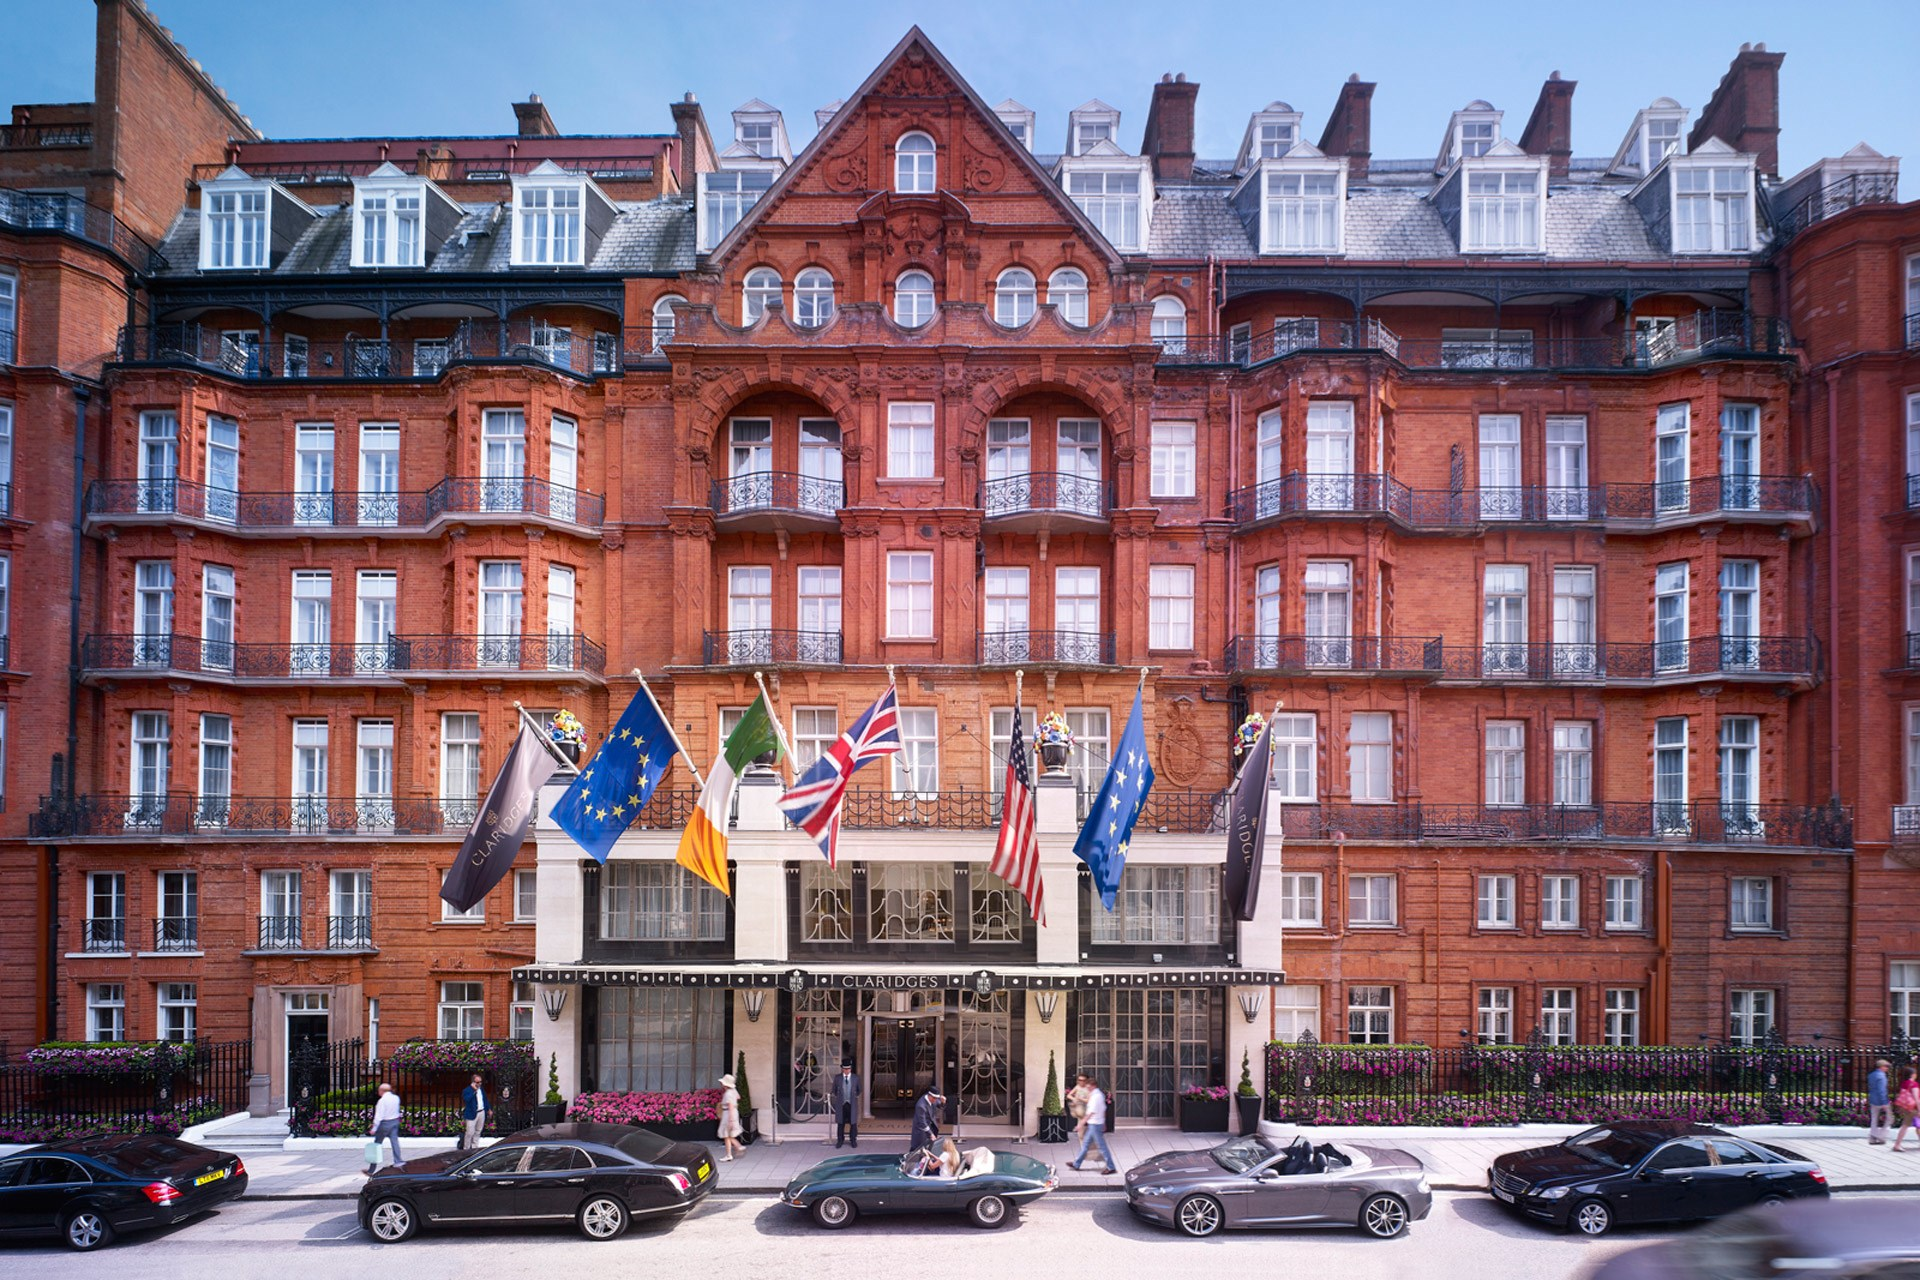 claridges hotel exterior in London